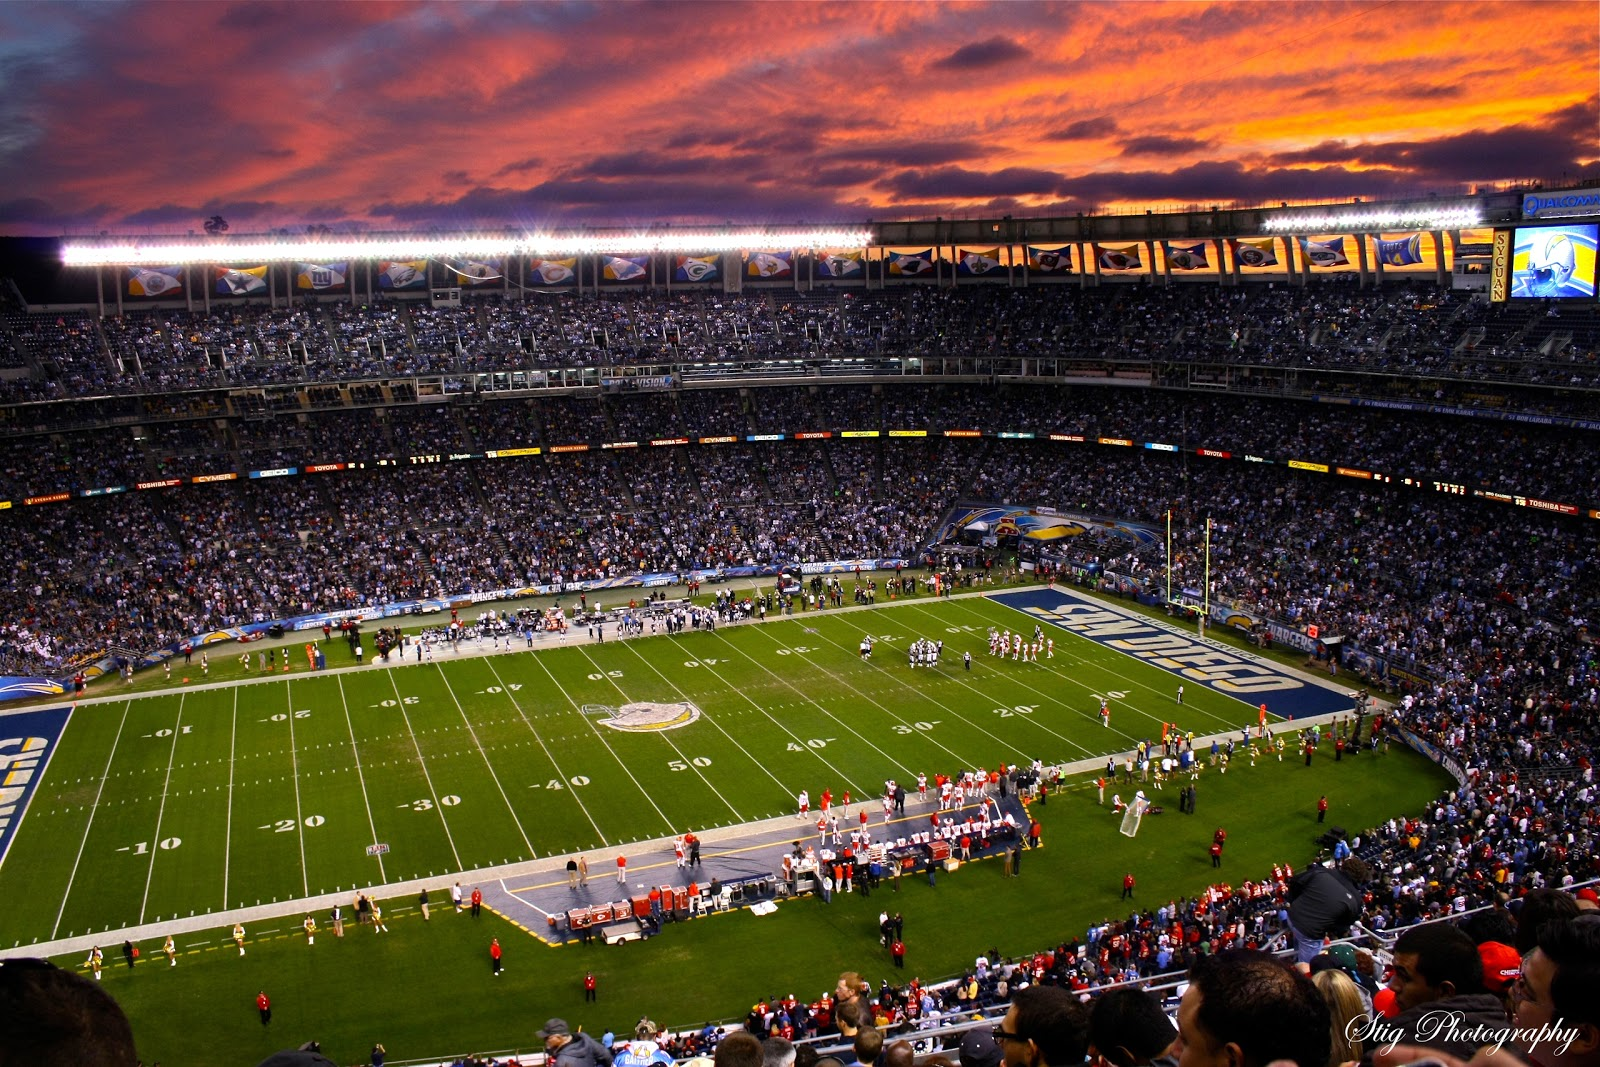 PhotograStig: Session at Qualcomm Stadium with Chargers ... Qualcomm Stadium Chargers Wallpaper